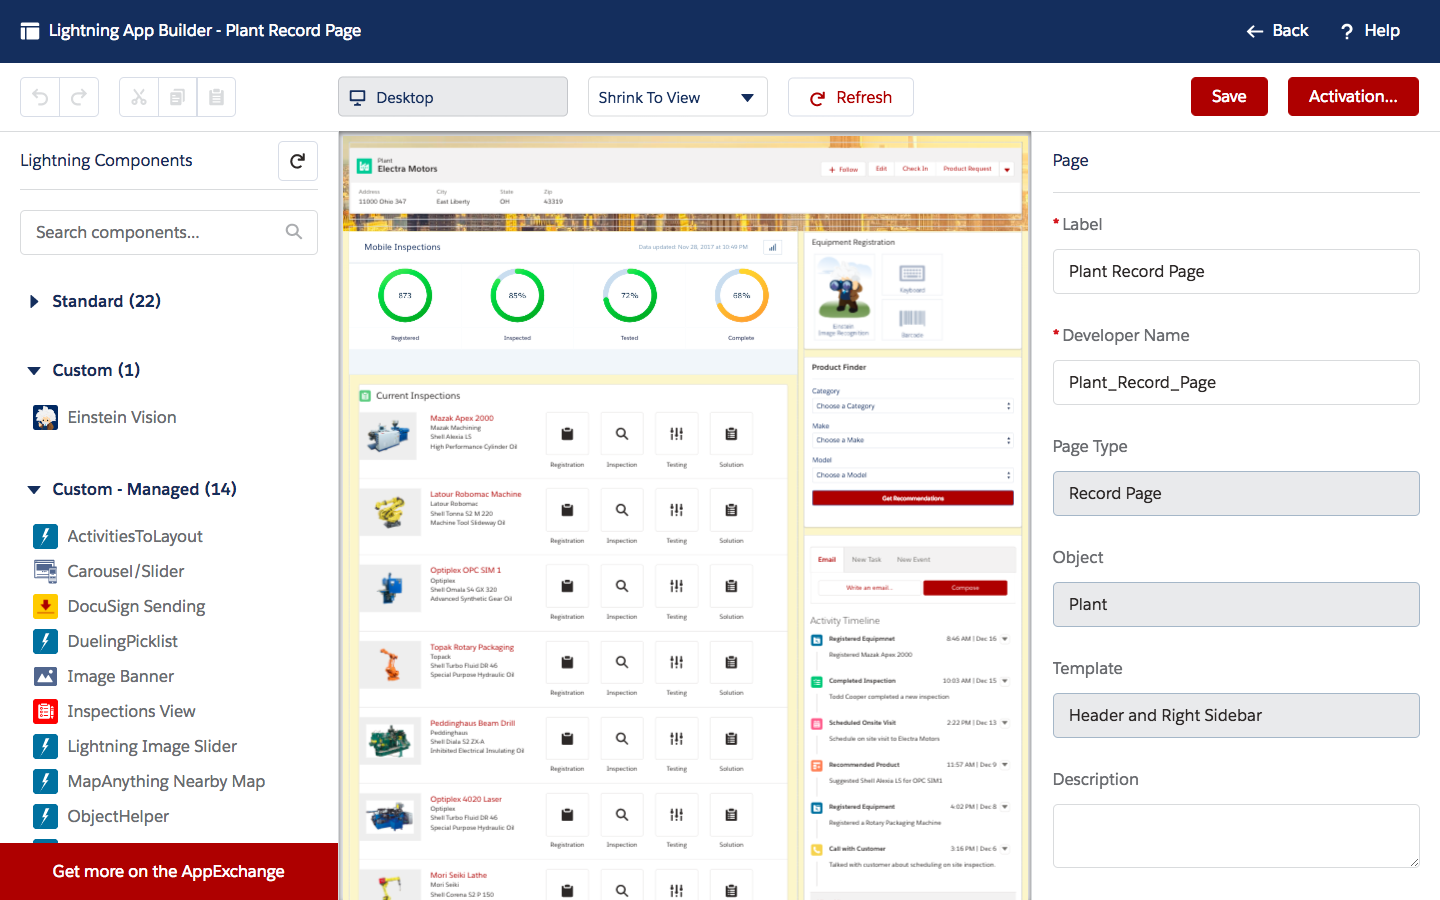 A Lightning page being customized with Lightning App Builder, using both custom and out-of-the-box Lightning components.